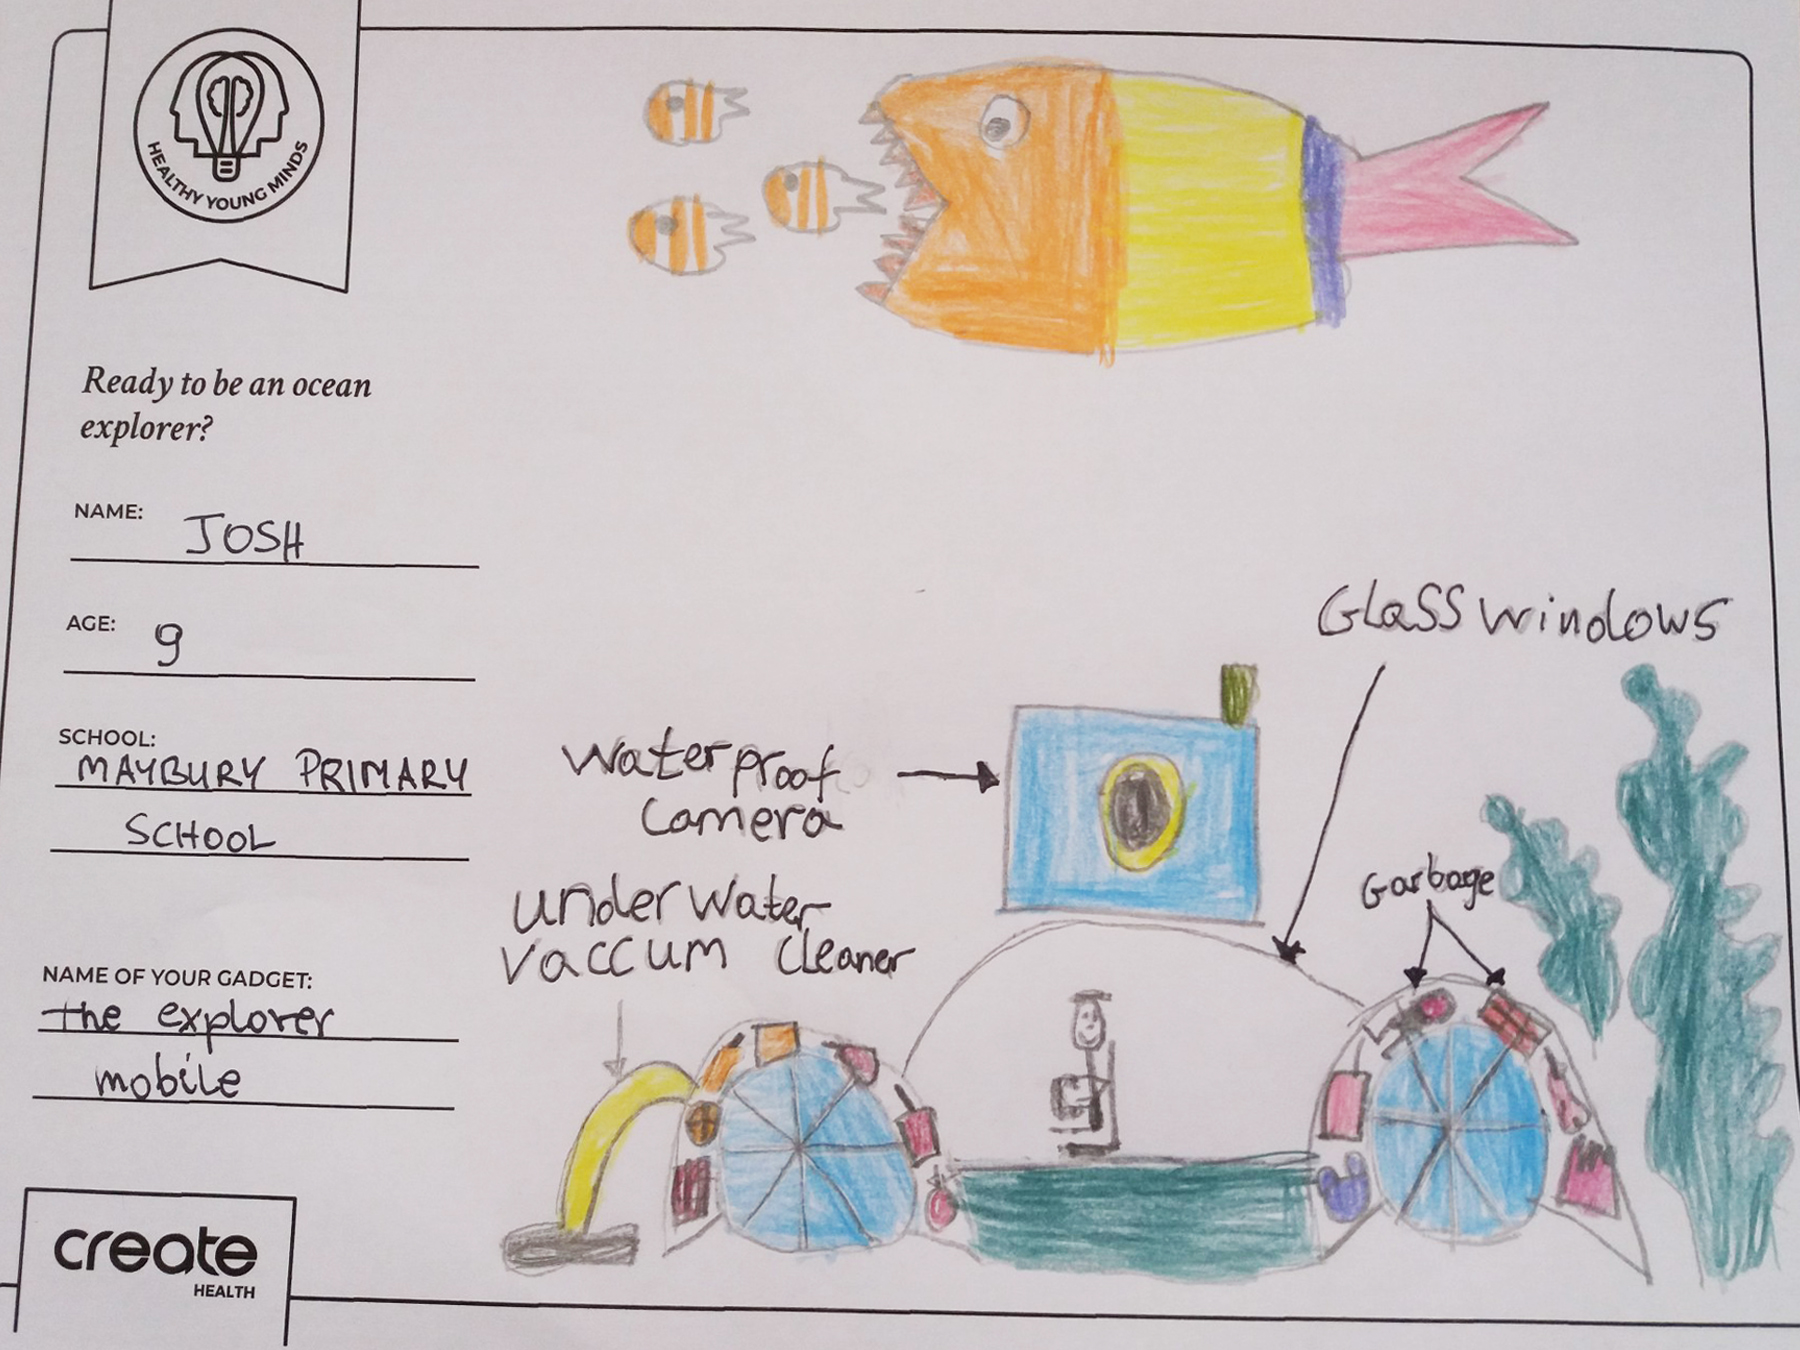 Healthy Young Minds art entrant - Josh - age 9